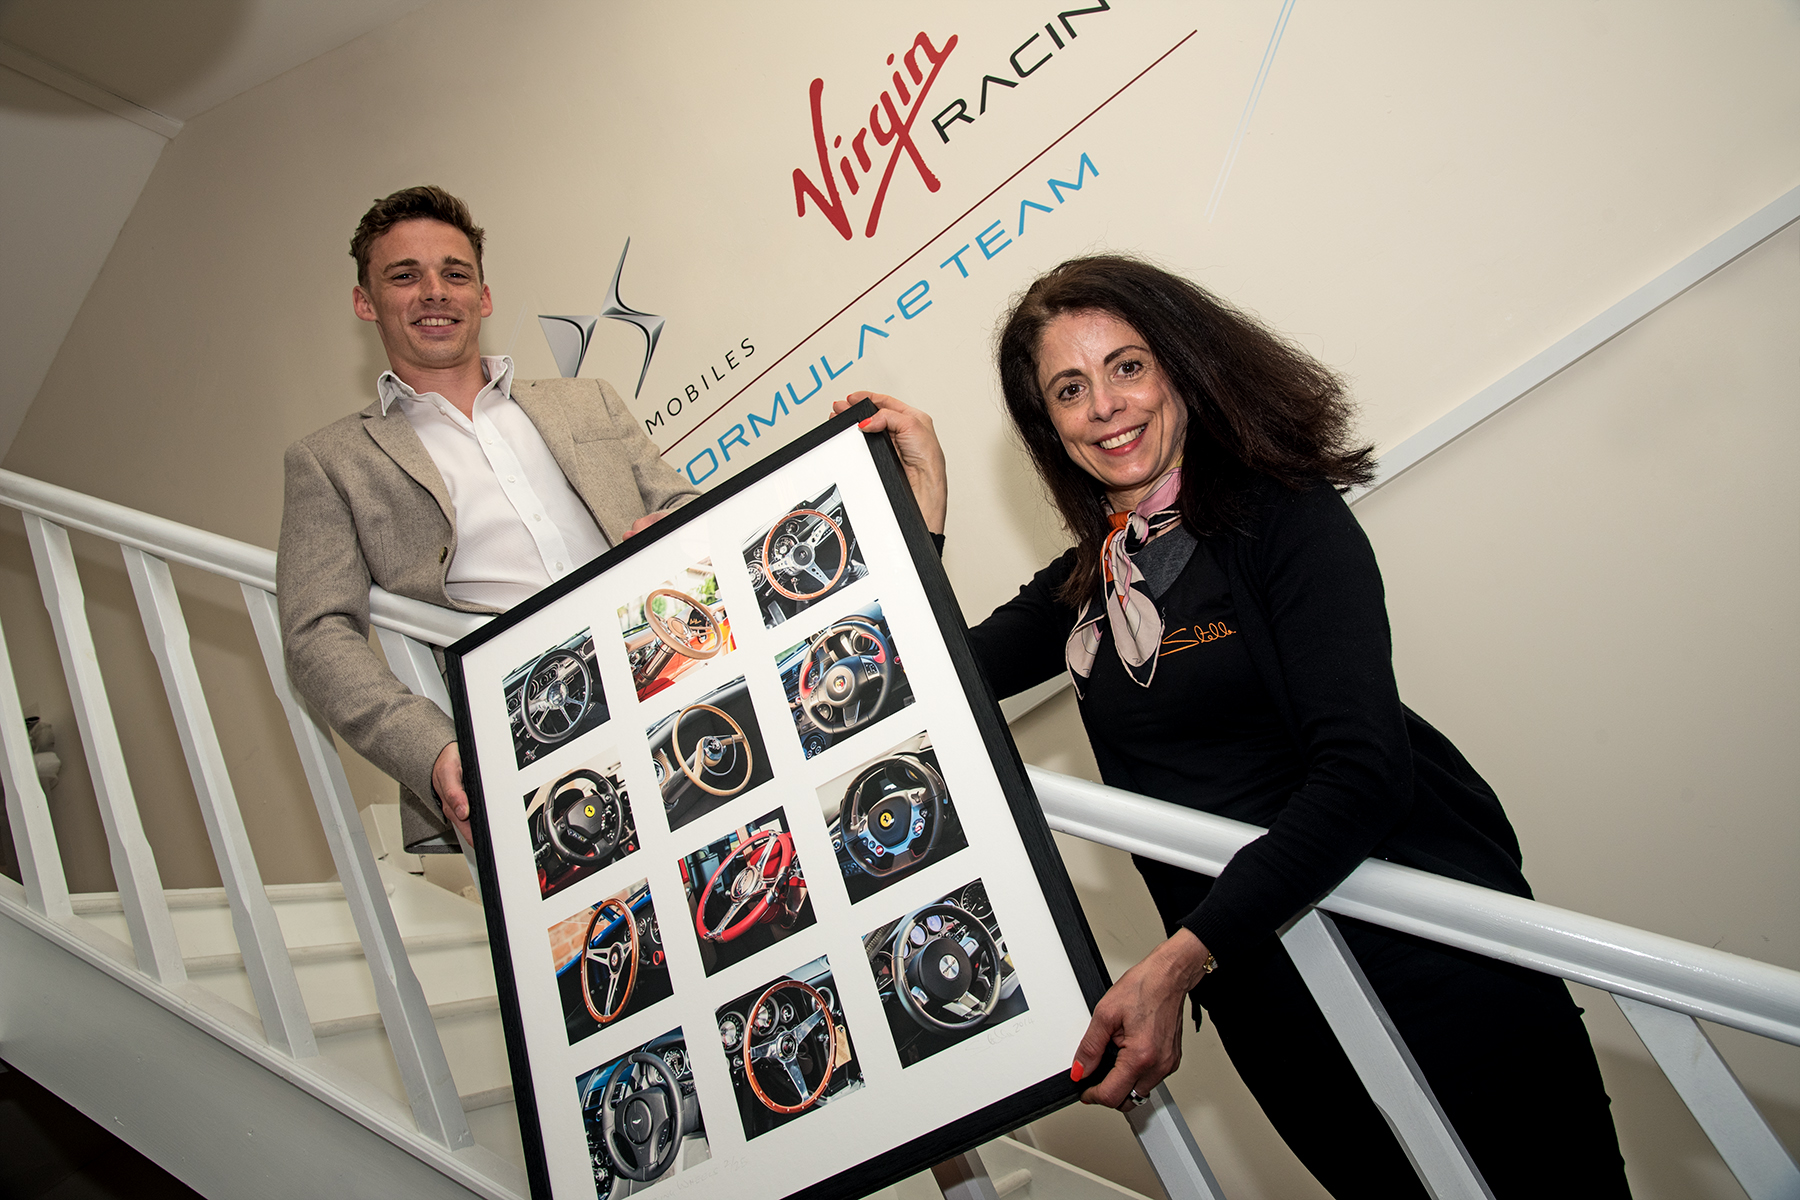 - Ben King the winner of the limited editionphotograph 'Steering Wheels' presented to himby Stella at his place of work.Ben correctly identified which make, model and year of each car, the steering wheels belonged to, from his visit to the Elite London Show in June 2016